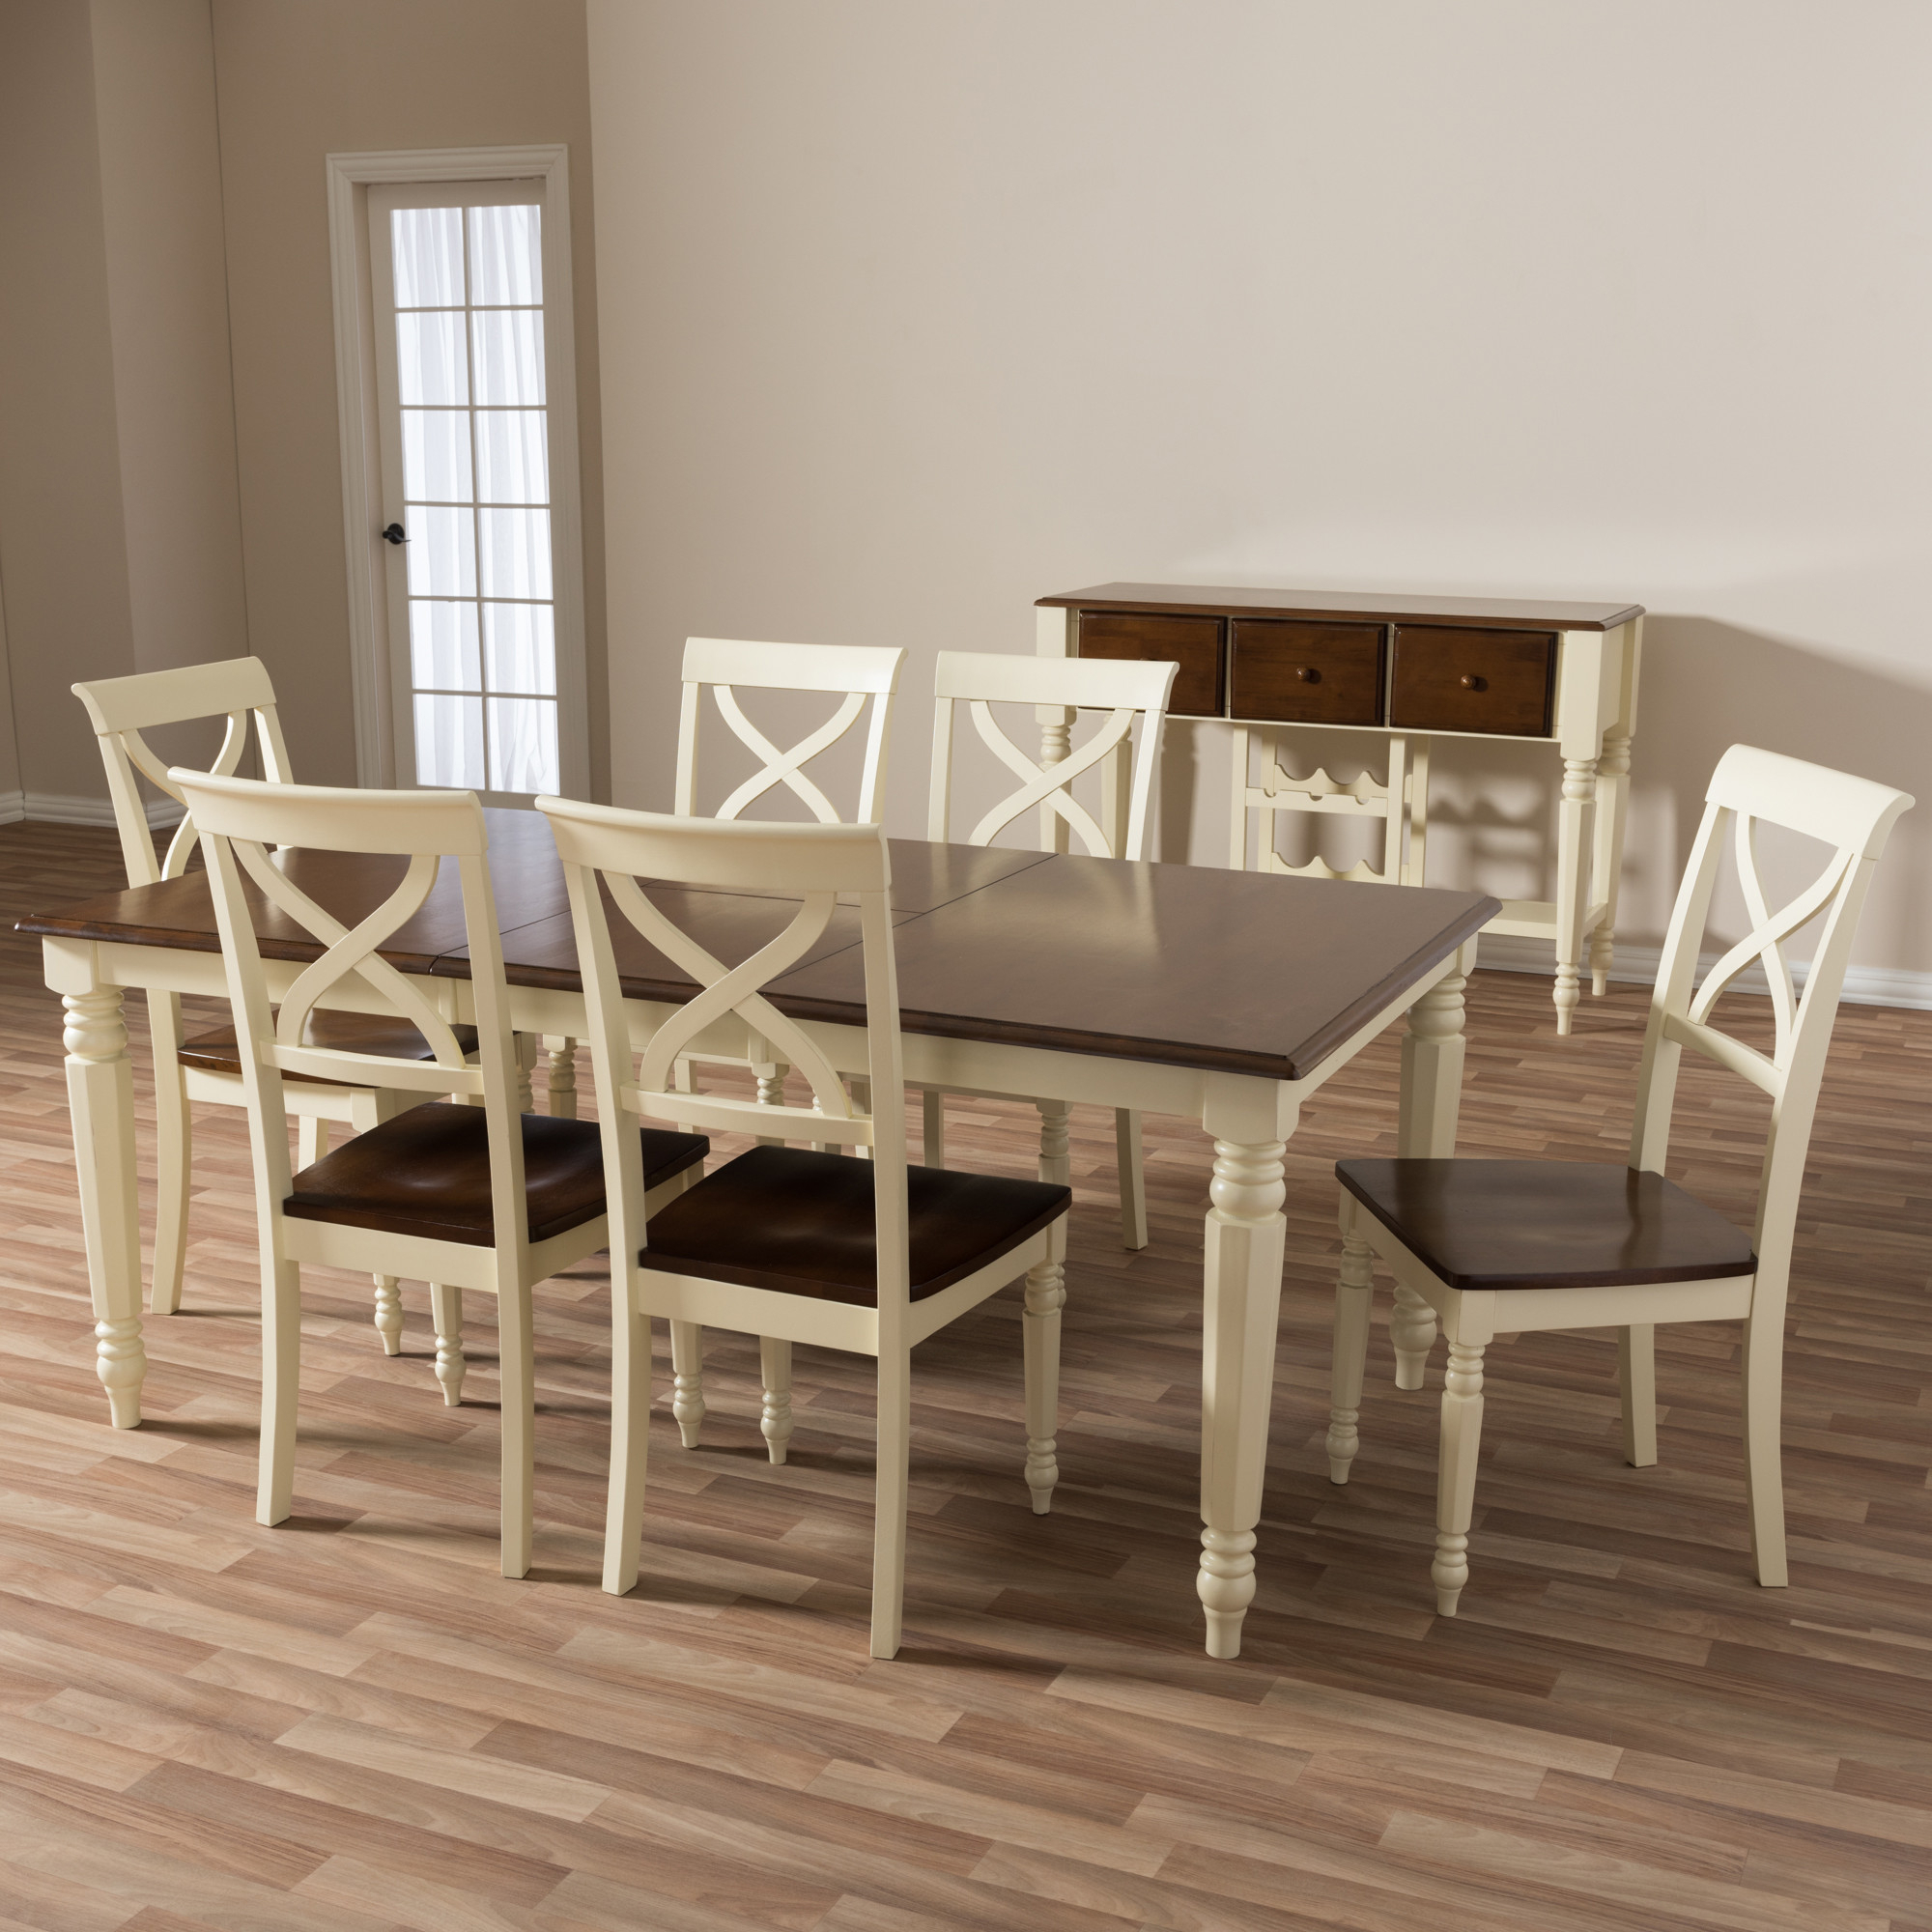 Most Current Baxton Studio Keitaro 5 Piece Dining Sets Throughout Wholesale Dining Sets. Room Pier One (View 13 of 25)